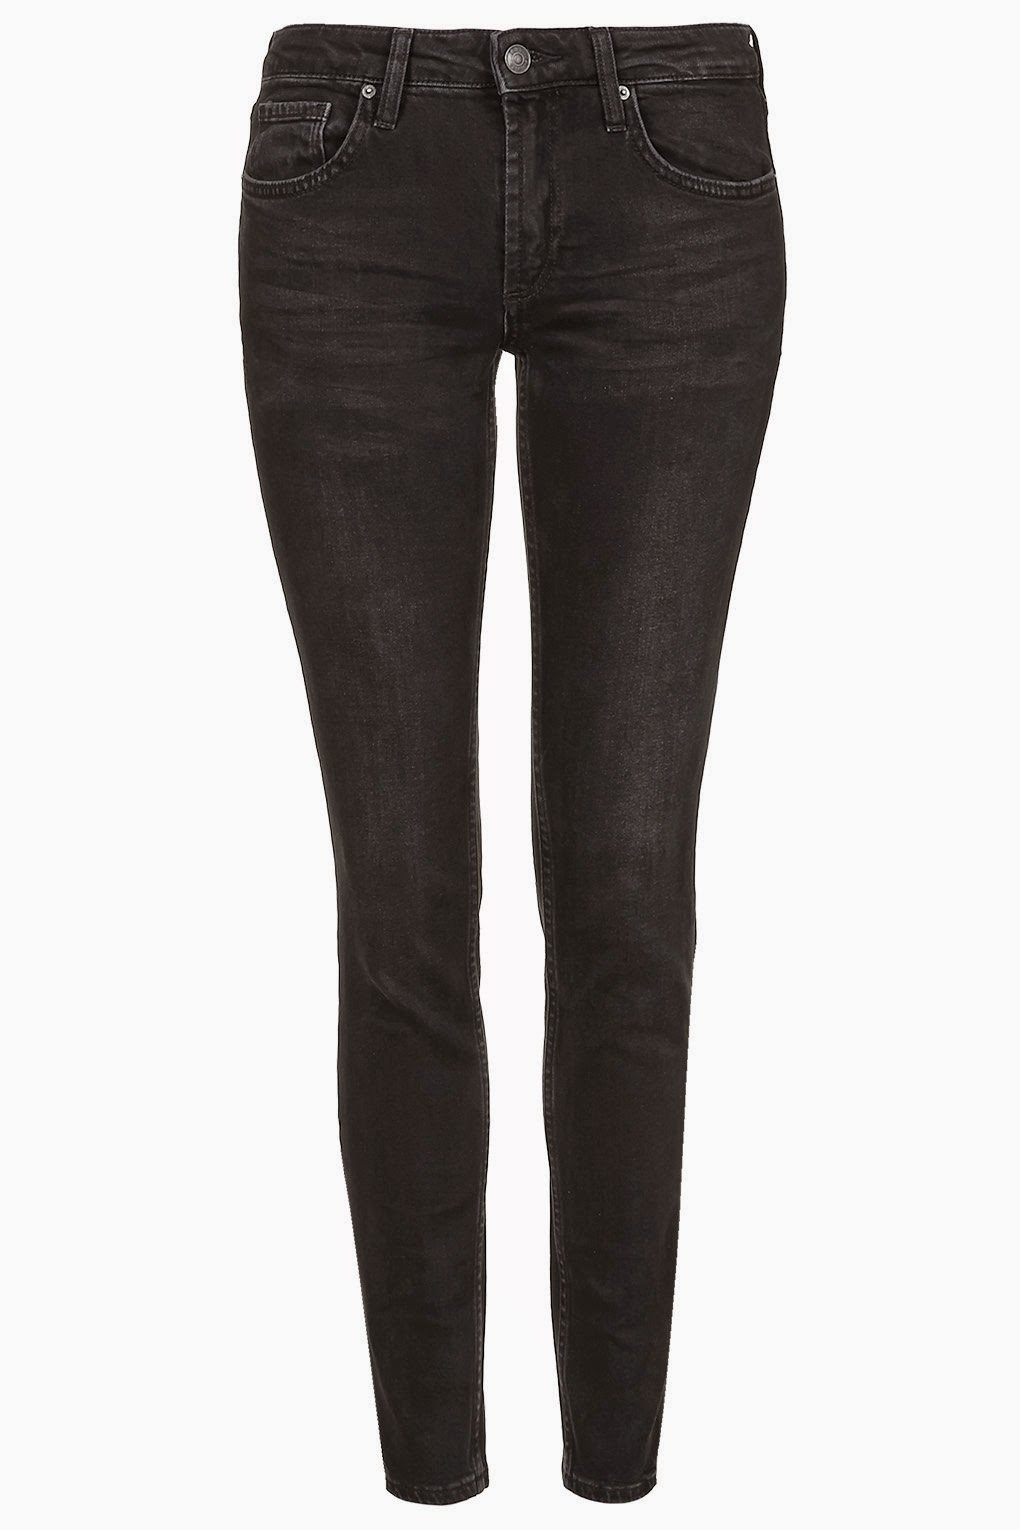 topshop black baxter jeans review 2015,